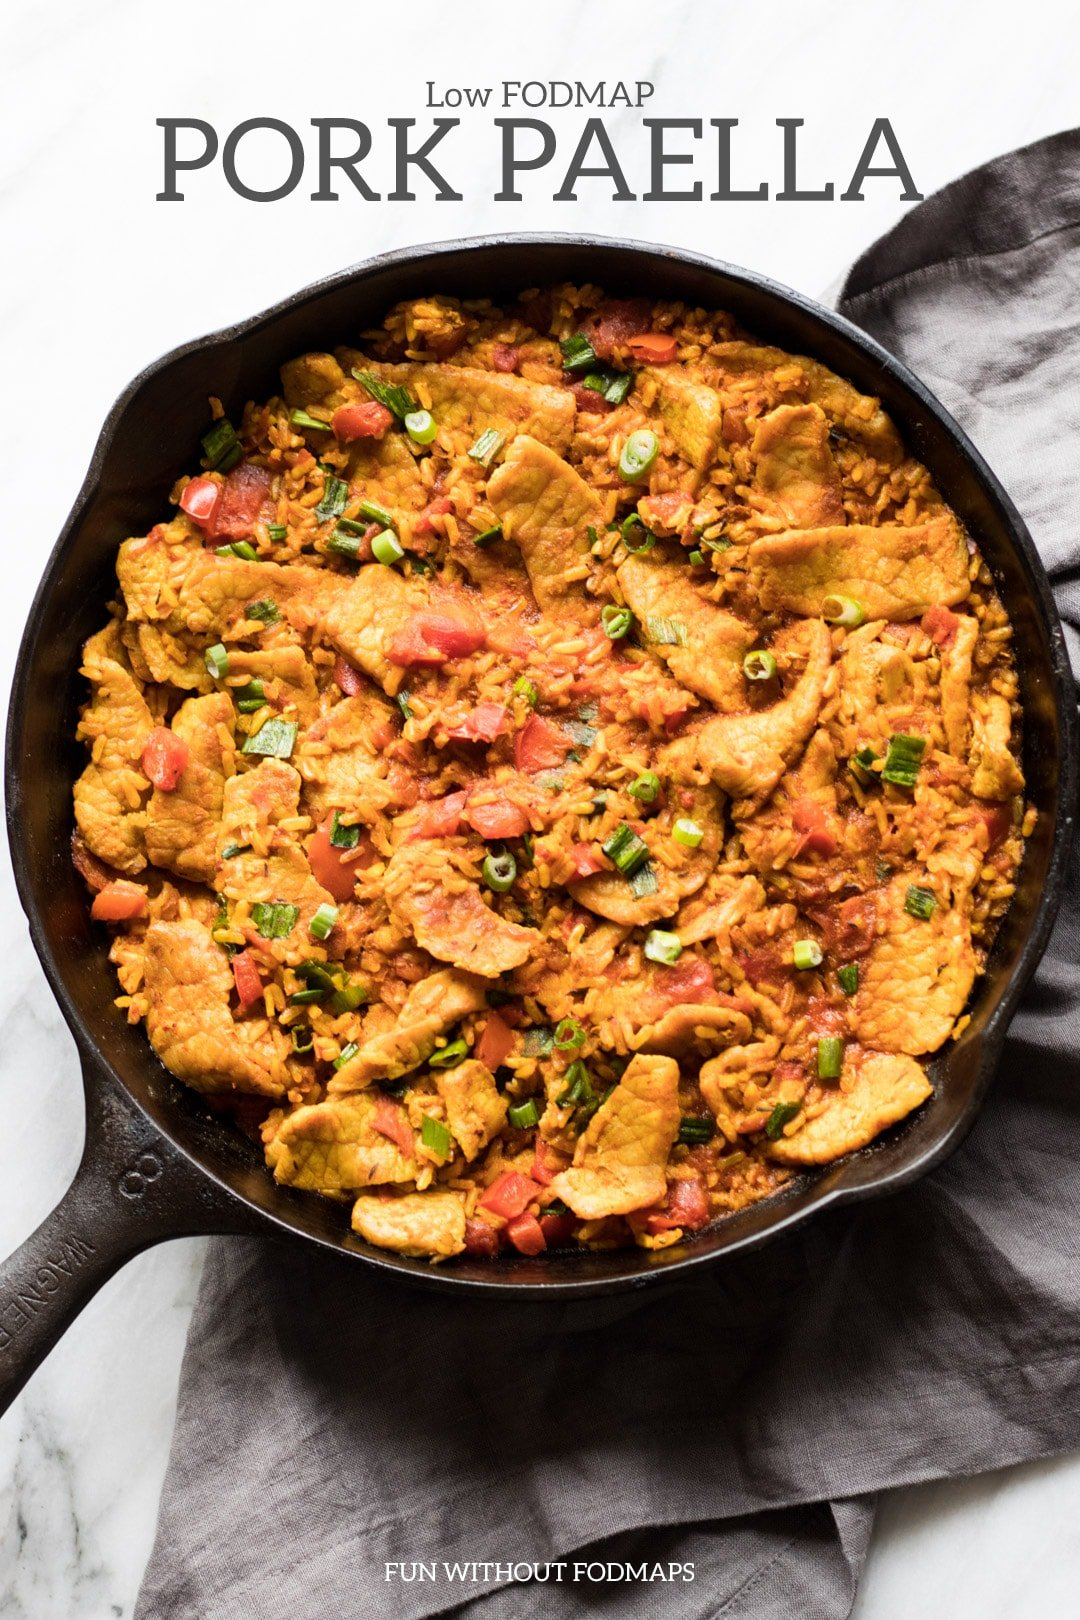 Low FODMAP Pork Paella